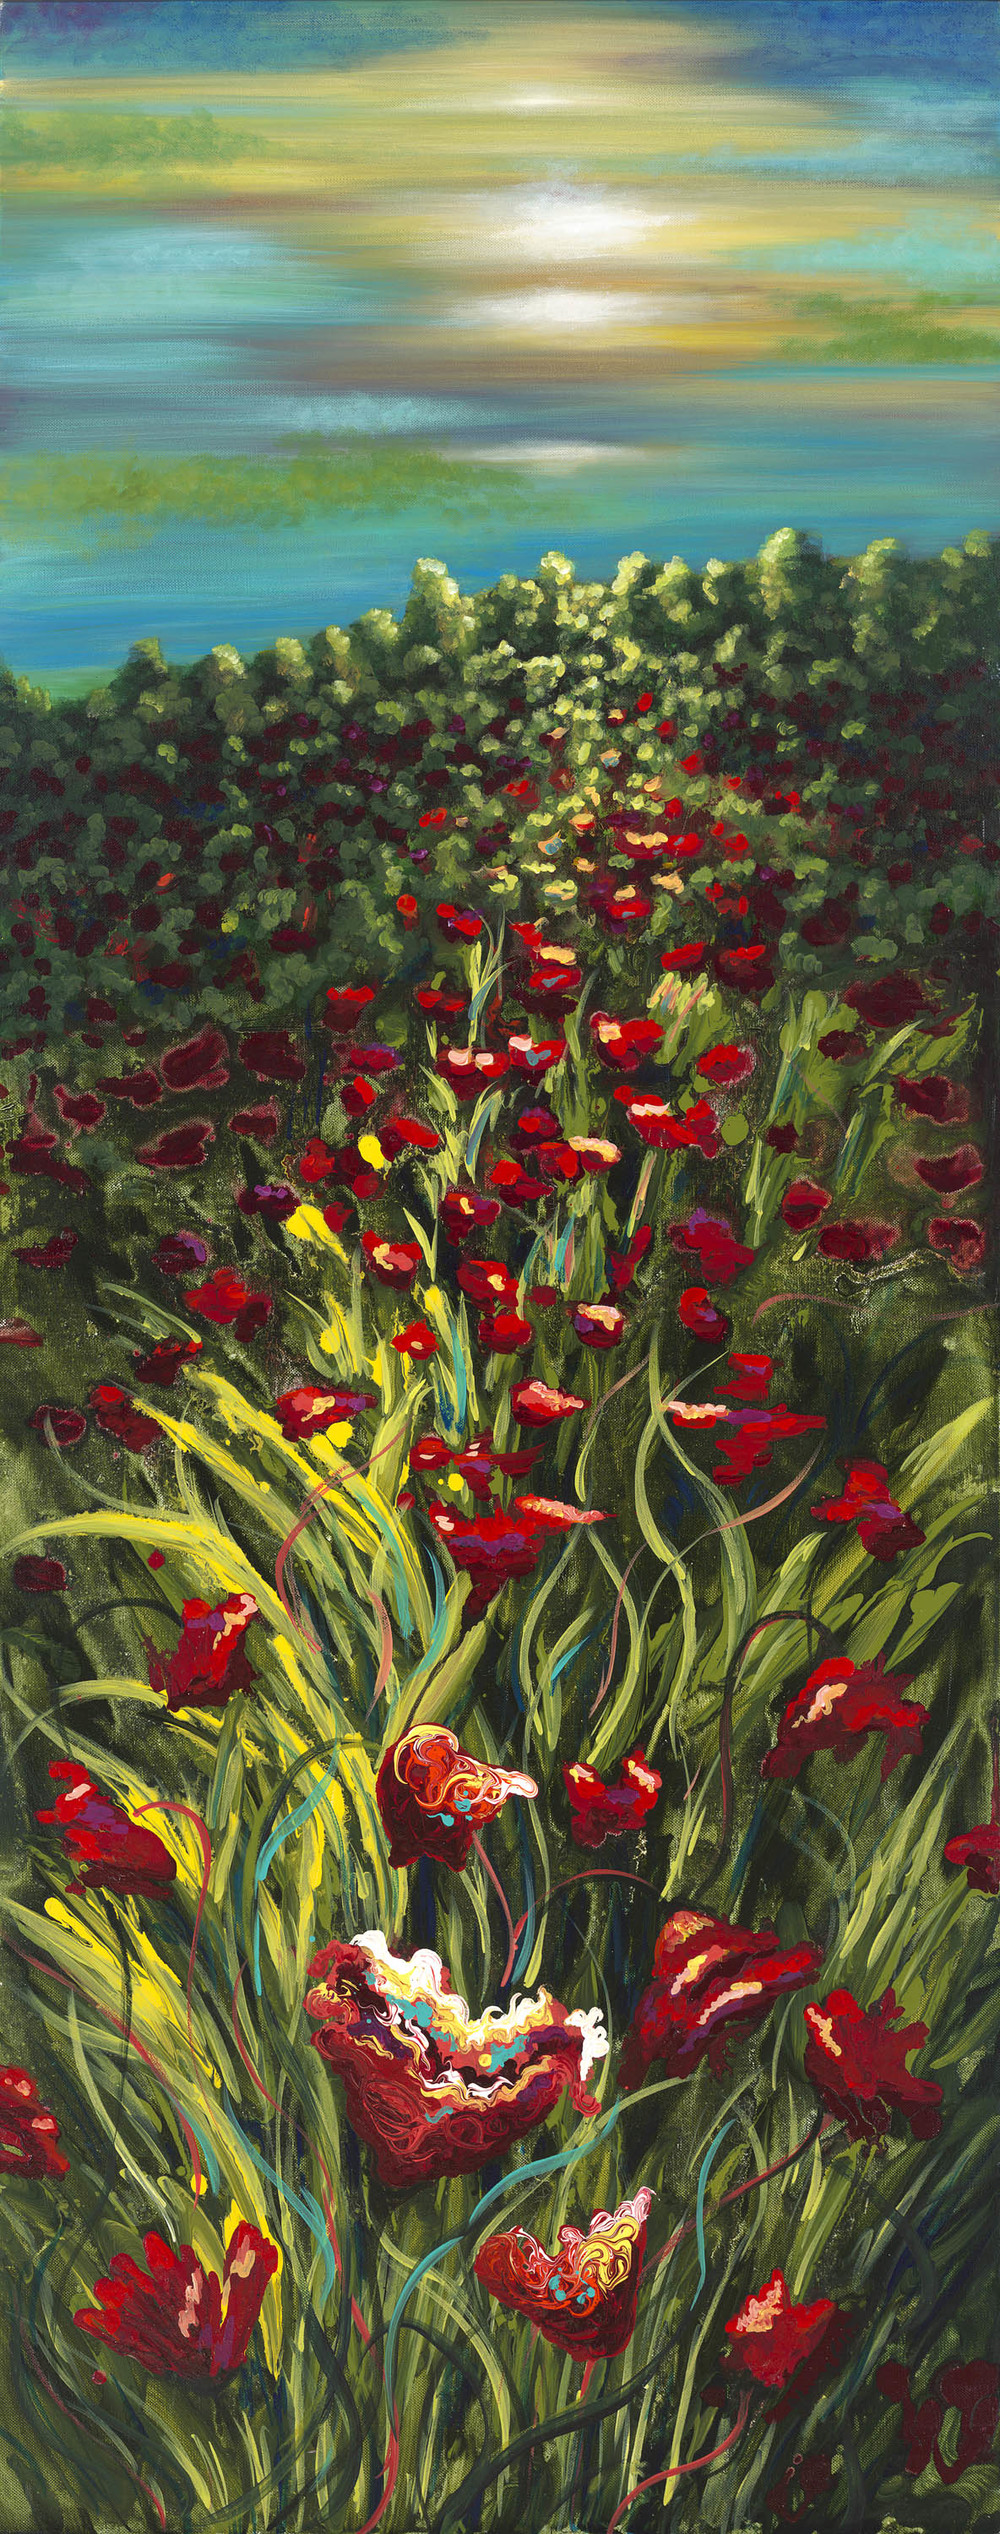 Poppies in the Sunset by Shawna C Elliott Commission